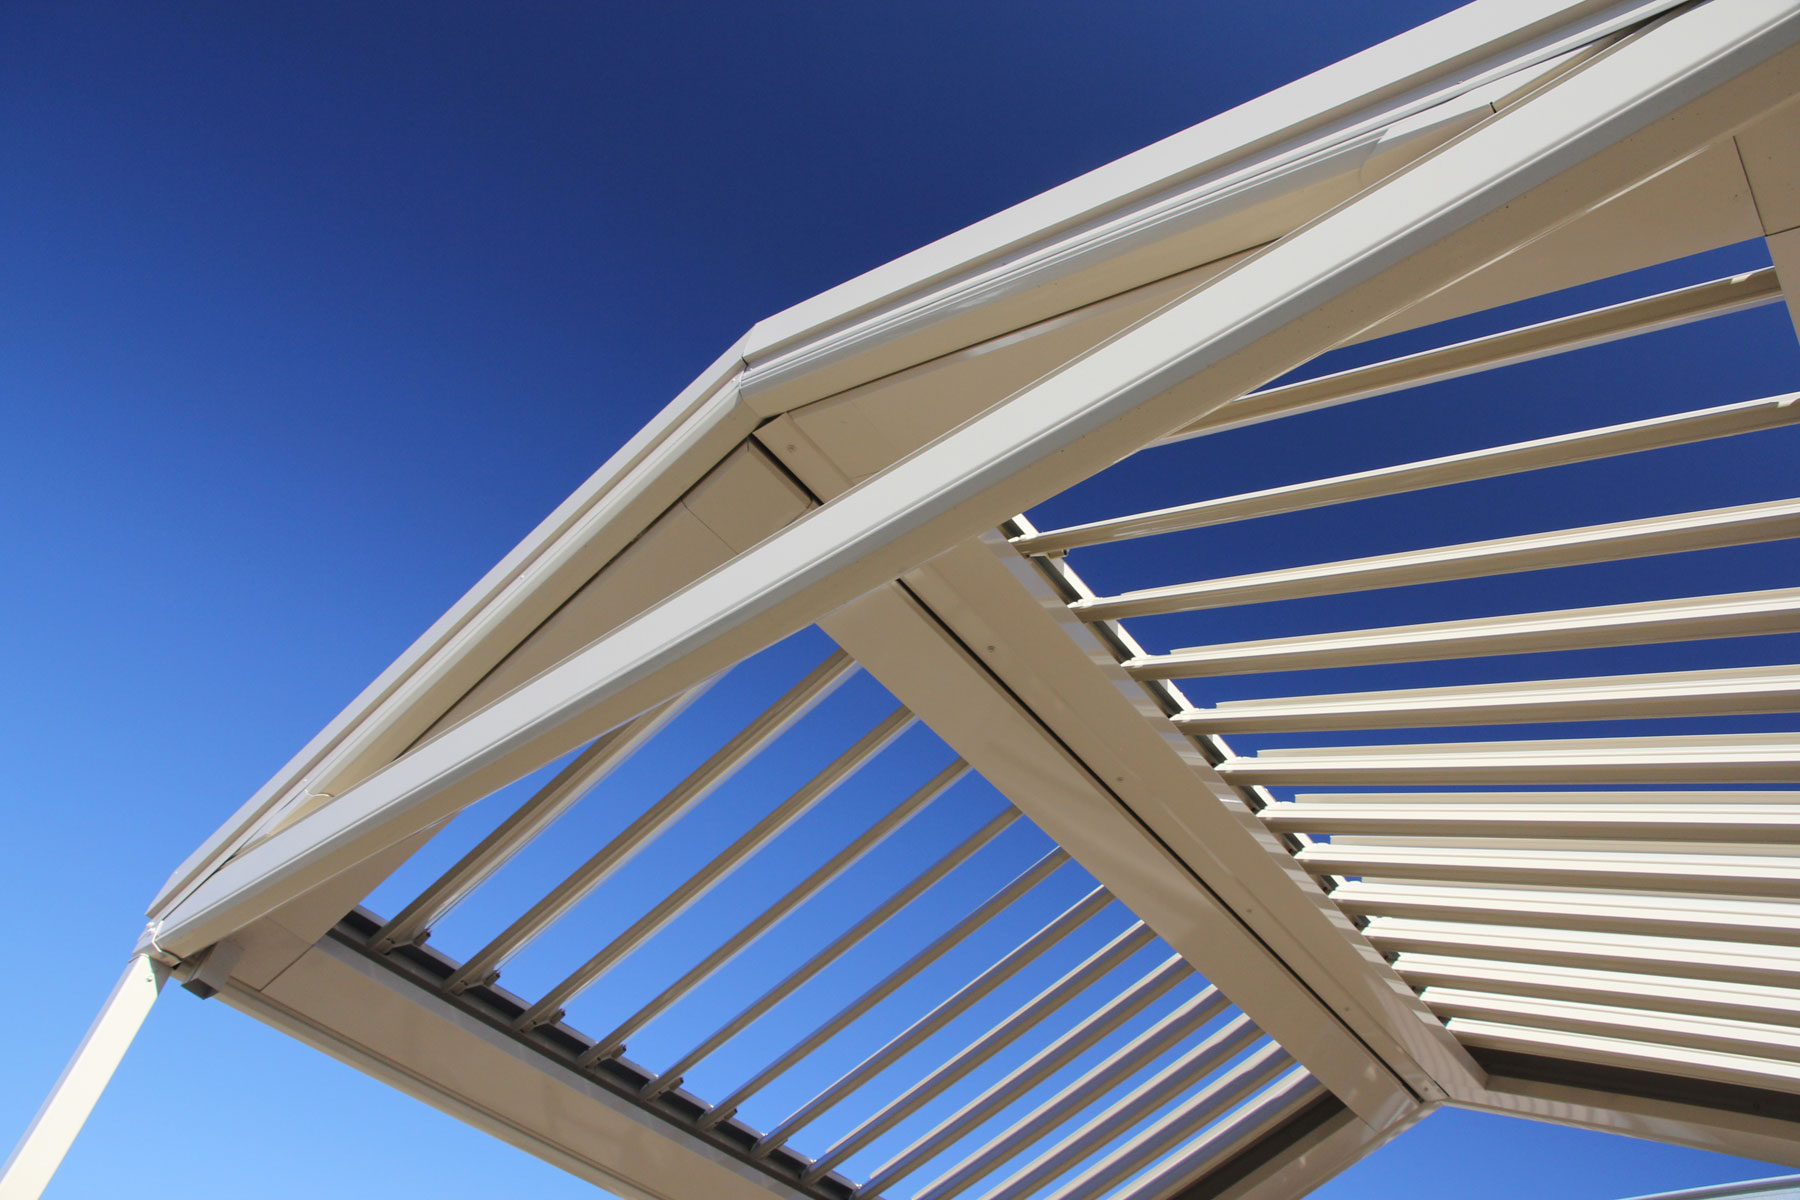 Outback Sunroof Stratco House Wiring Colour Codes Australia Image Gallery